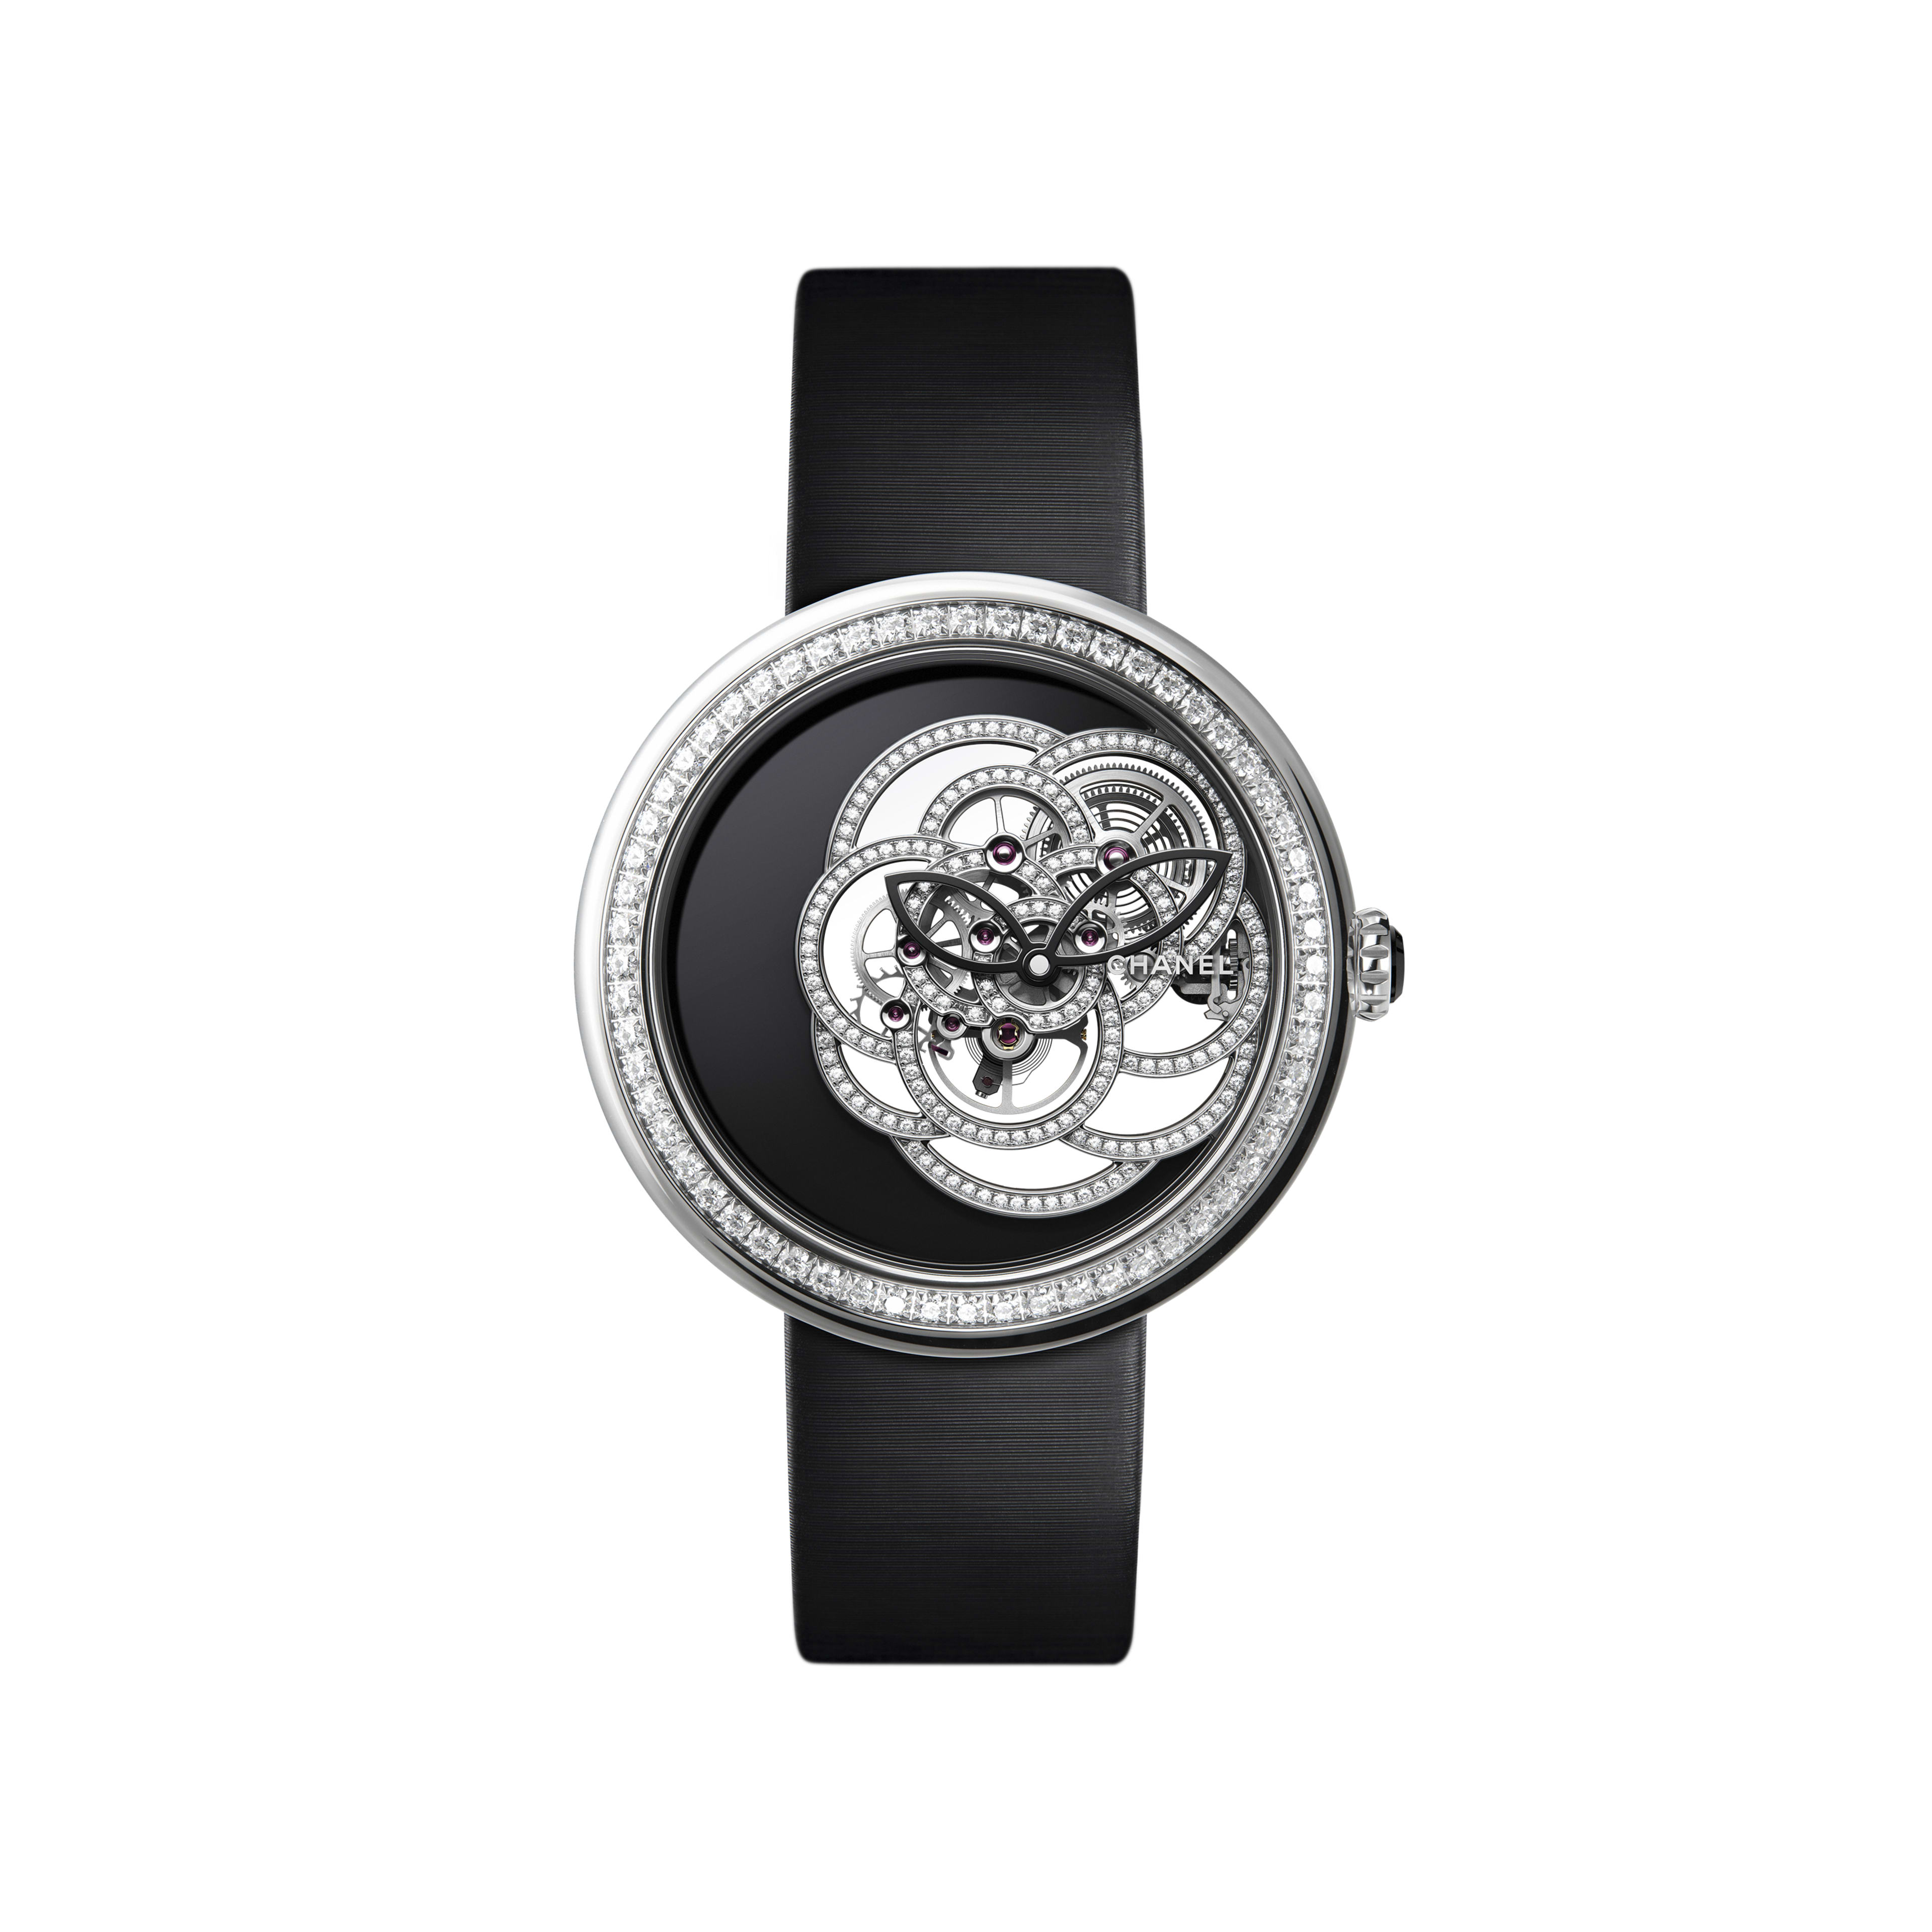 Chanel Mademoiselle Prive Camelia with a black onyx dial